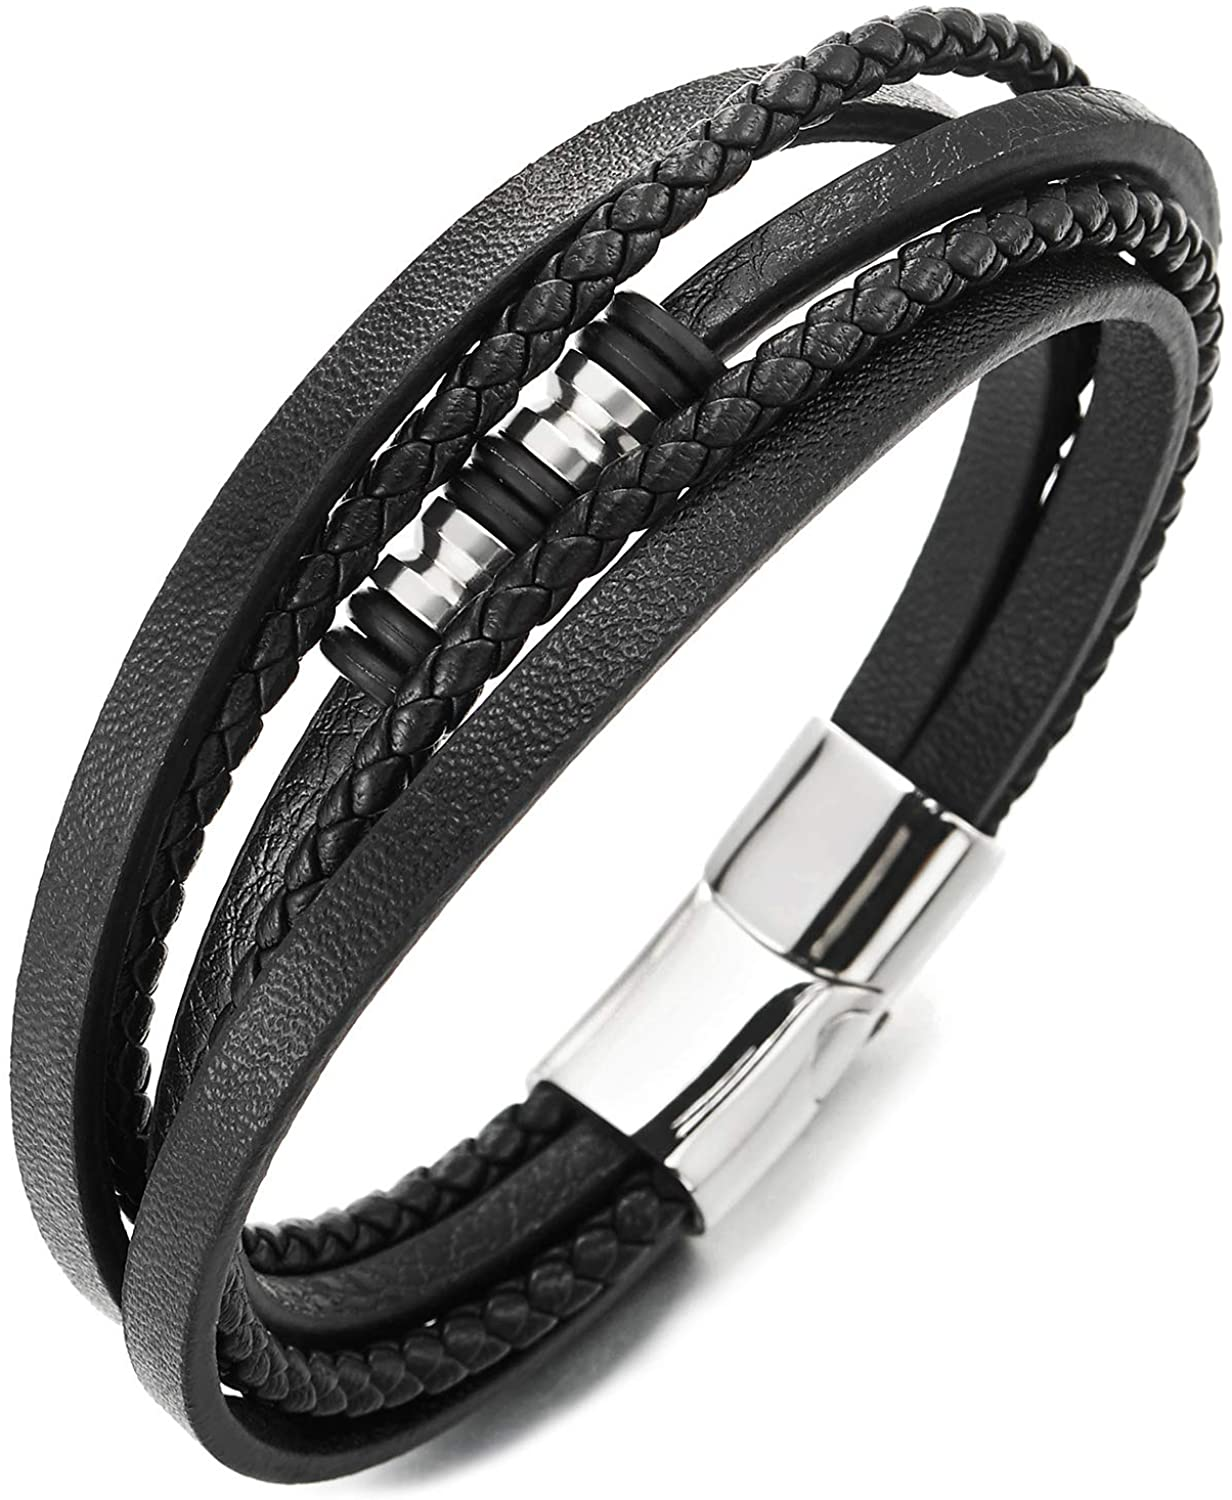 COOLSTEELANDBEYOND Mens Women Multi-Strand Black Braided Leather Bracelet Bangle with Steel Silver Bead Charms